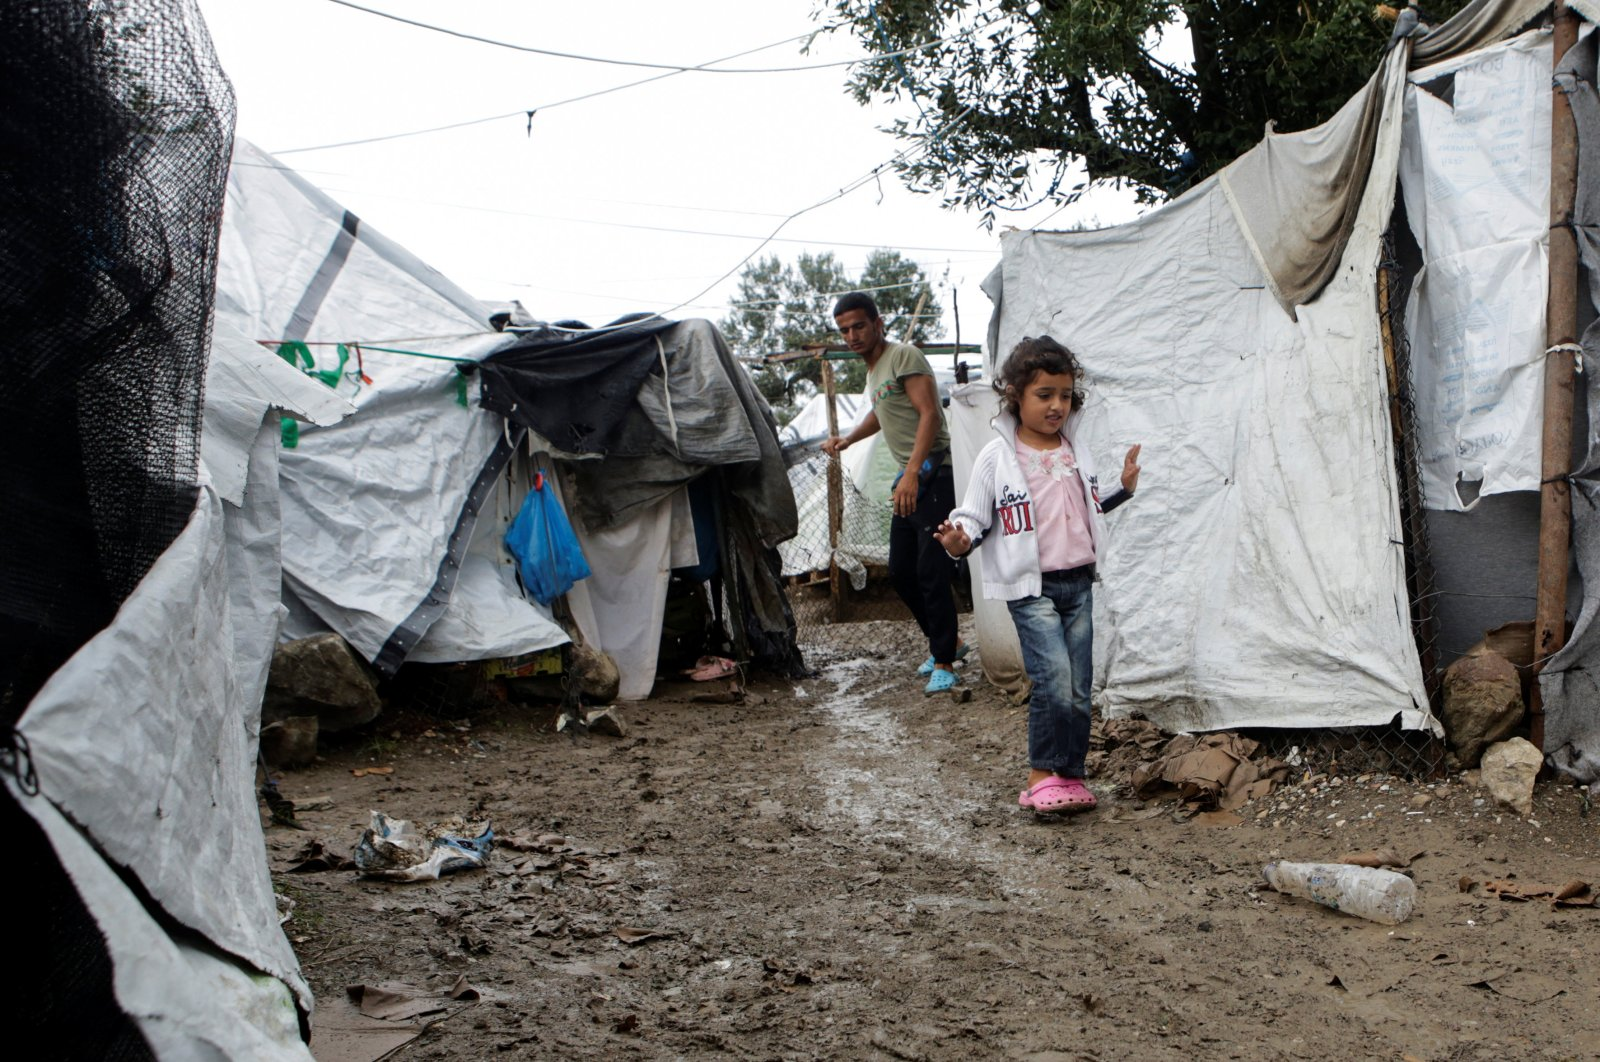 A girl makes her way next to tents at a makeshift camp for refugees and migrants next to the Moria camp, following a rainfall on the island of Lesbos, Greece, October 8, 2019. (REUTERS Photo)